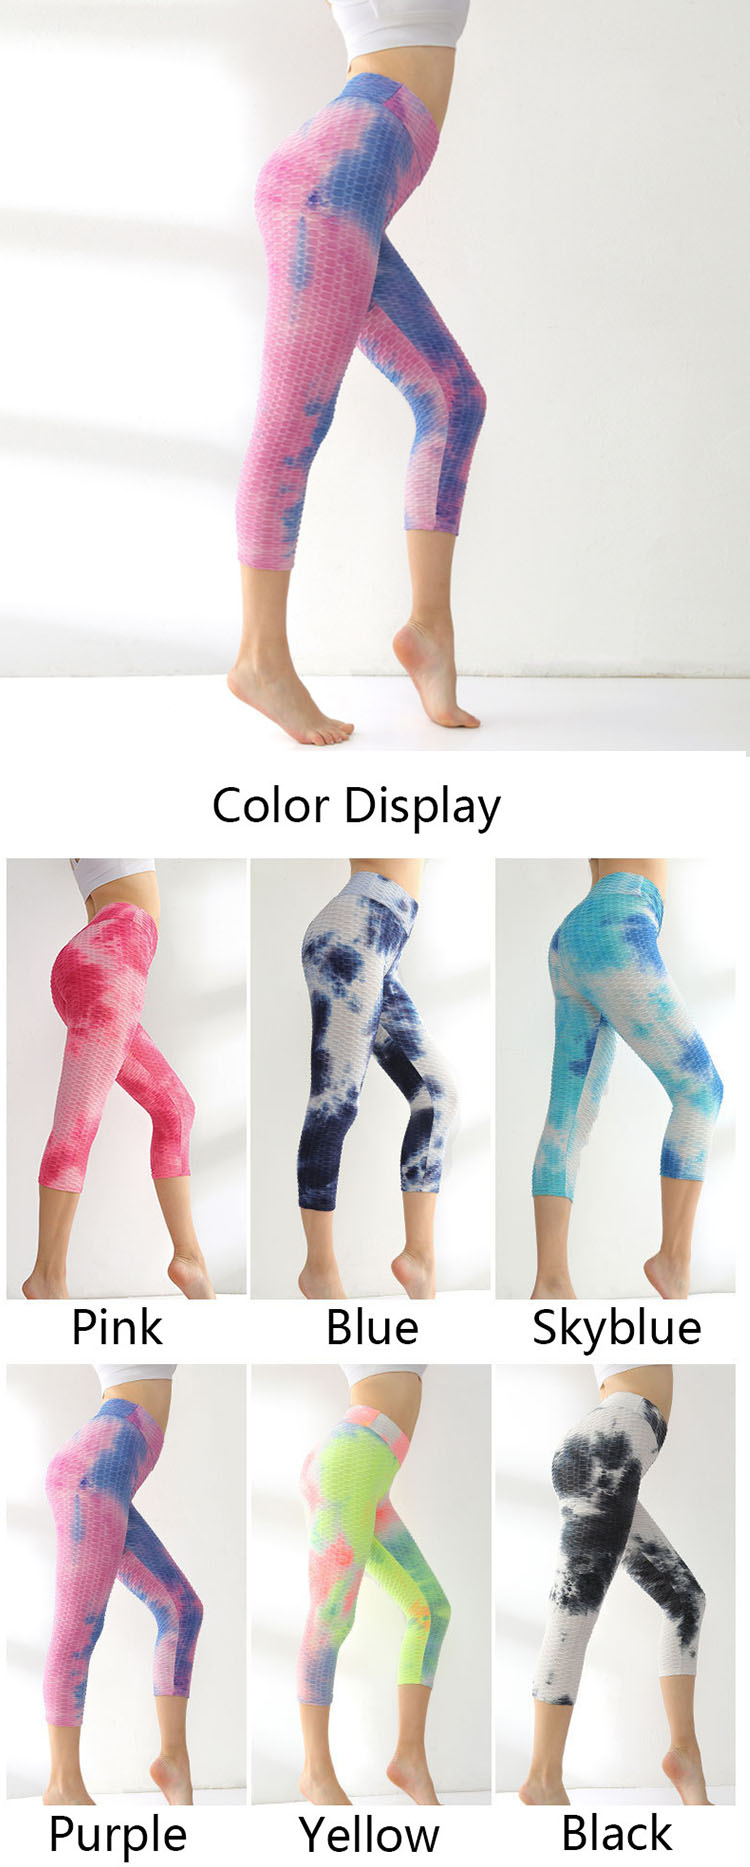 Using the old retro technology, pink ultimate leggings is worn out as a whole or the edges of the parts are washed with water